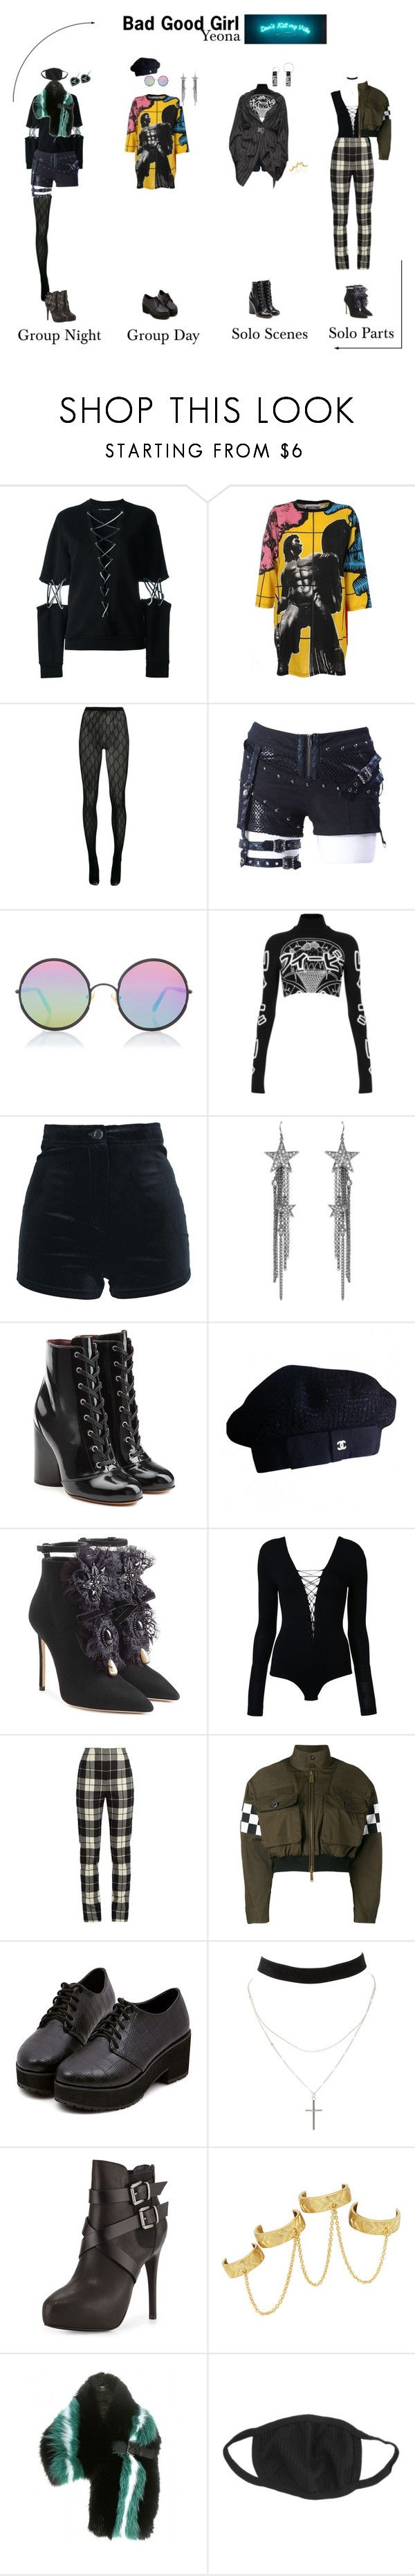 """Bad Good Girl ~ Yeona"" by nsgirls ❤ liked on Polyvore featuring Filles à papa, Moschino, Gucci, Sunday Somewhere, Illustrated People, Ben-Amun, Marc Jacobs, Chanel, Dsquared2 and T By Alexander Wang"